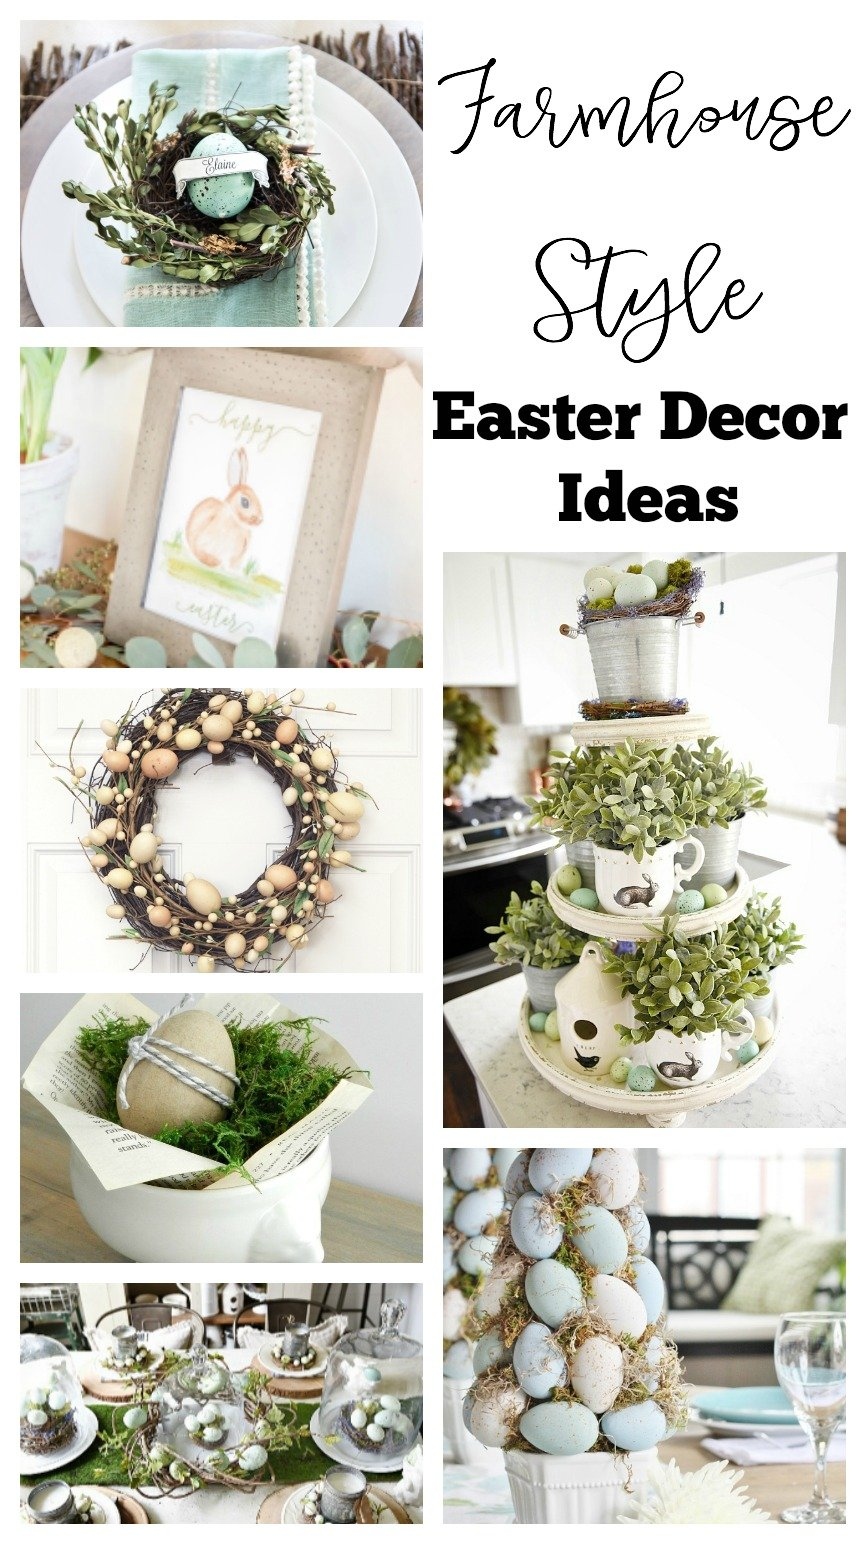 15 Farmhouse Style Easter Decor Ideas.